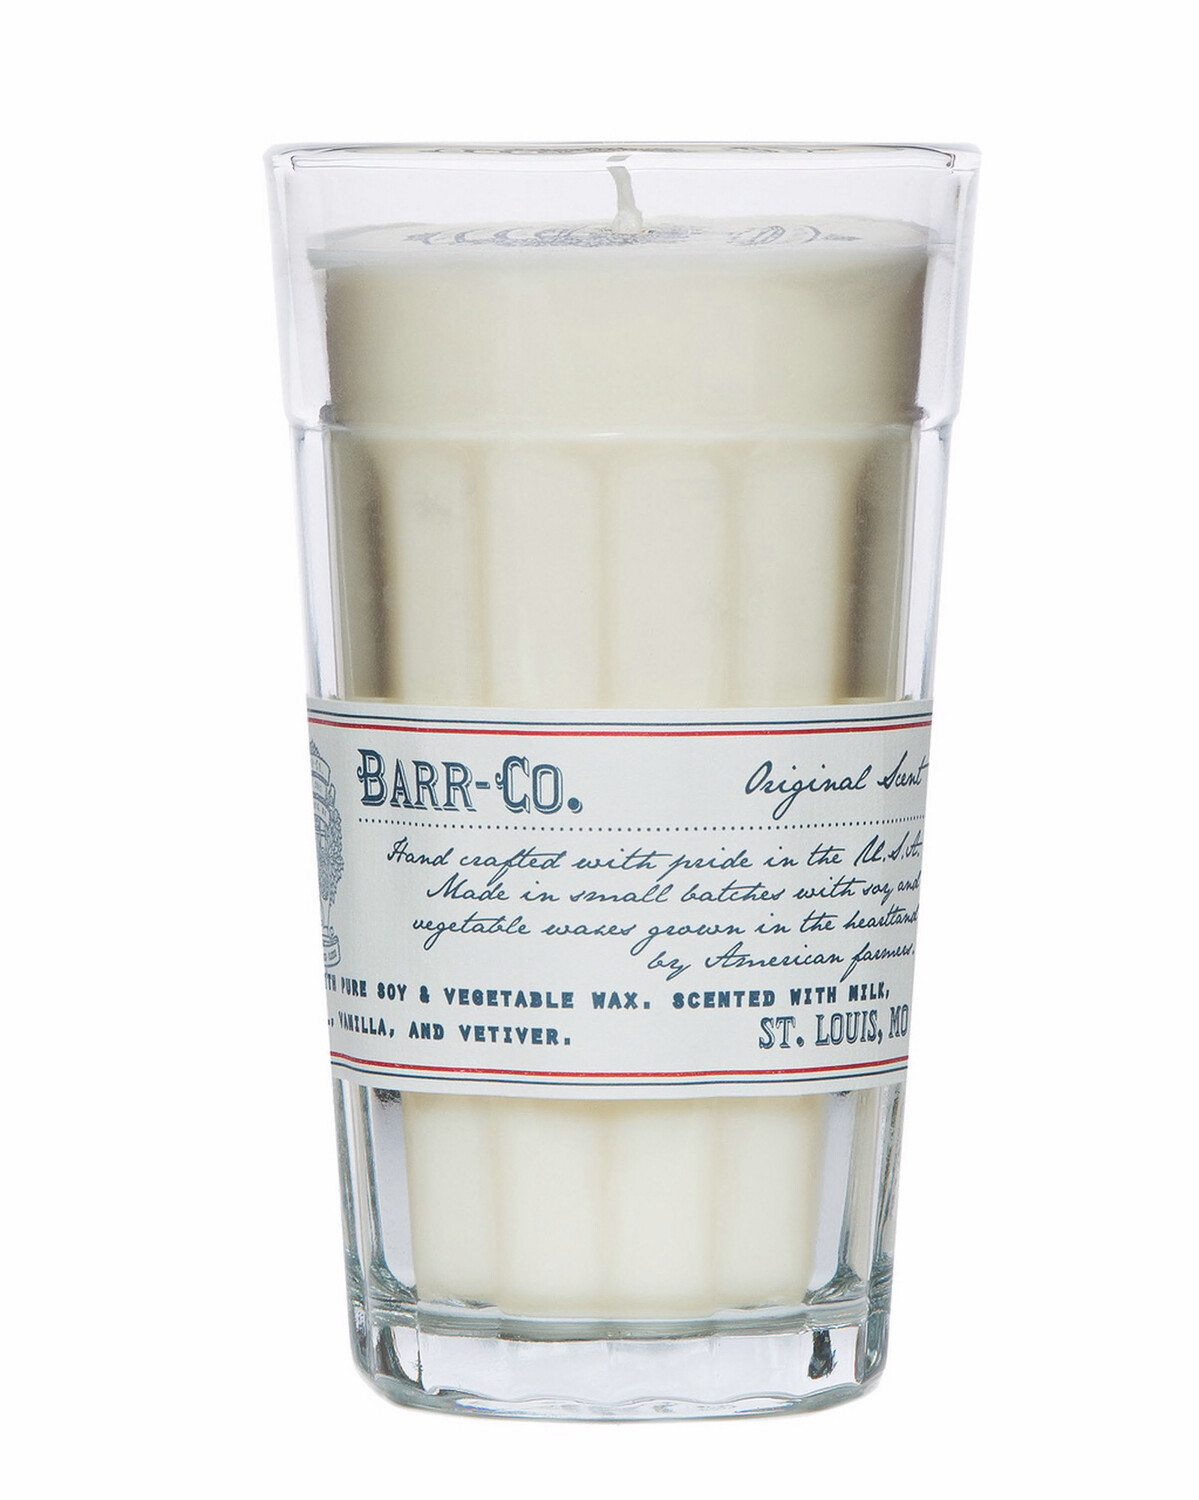 Barr-Co Original Scent Parfait Glass Candle